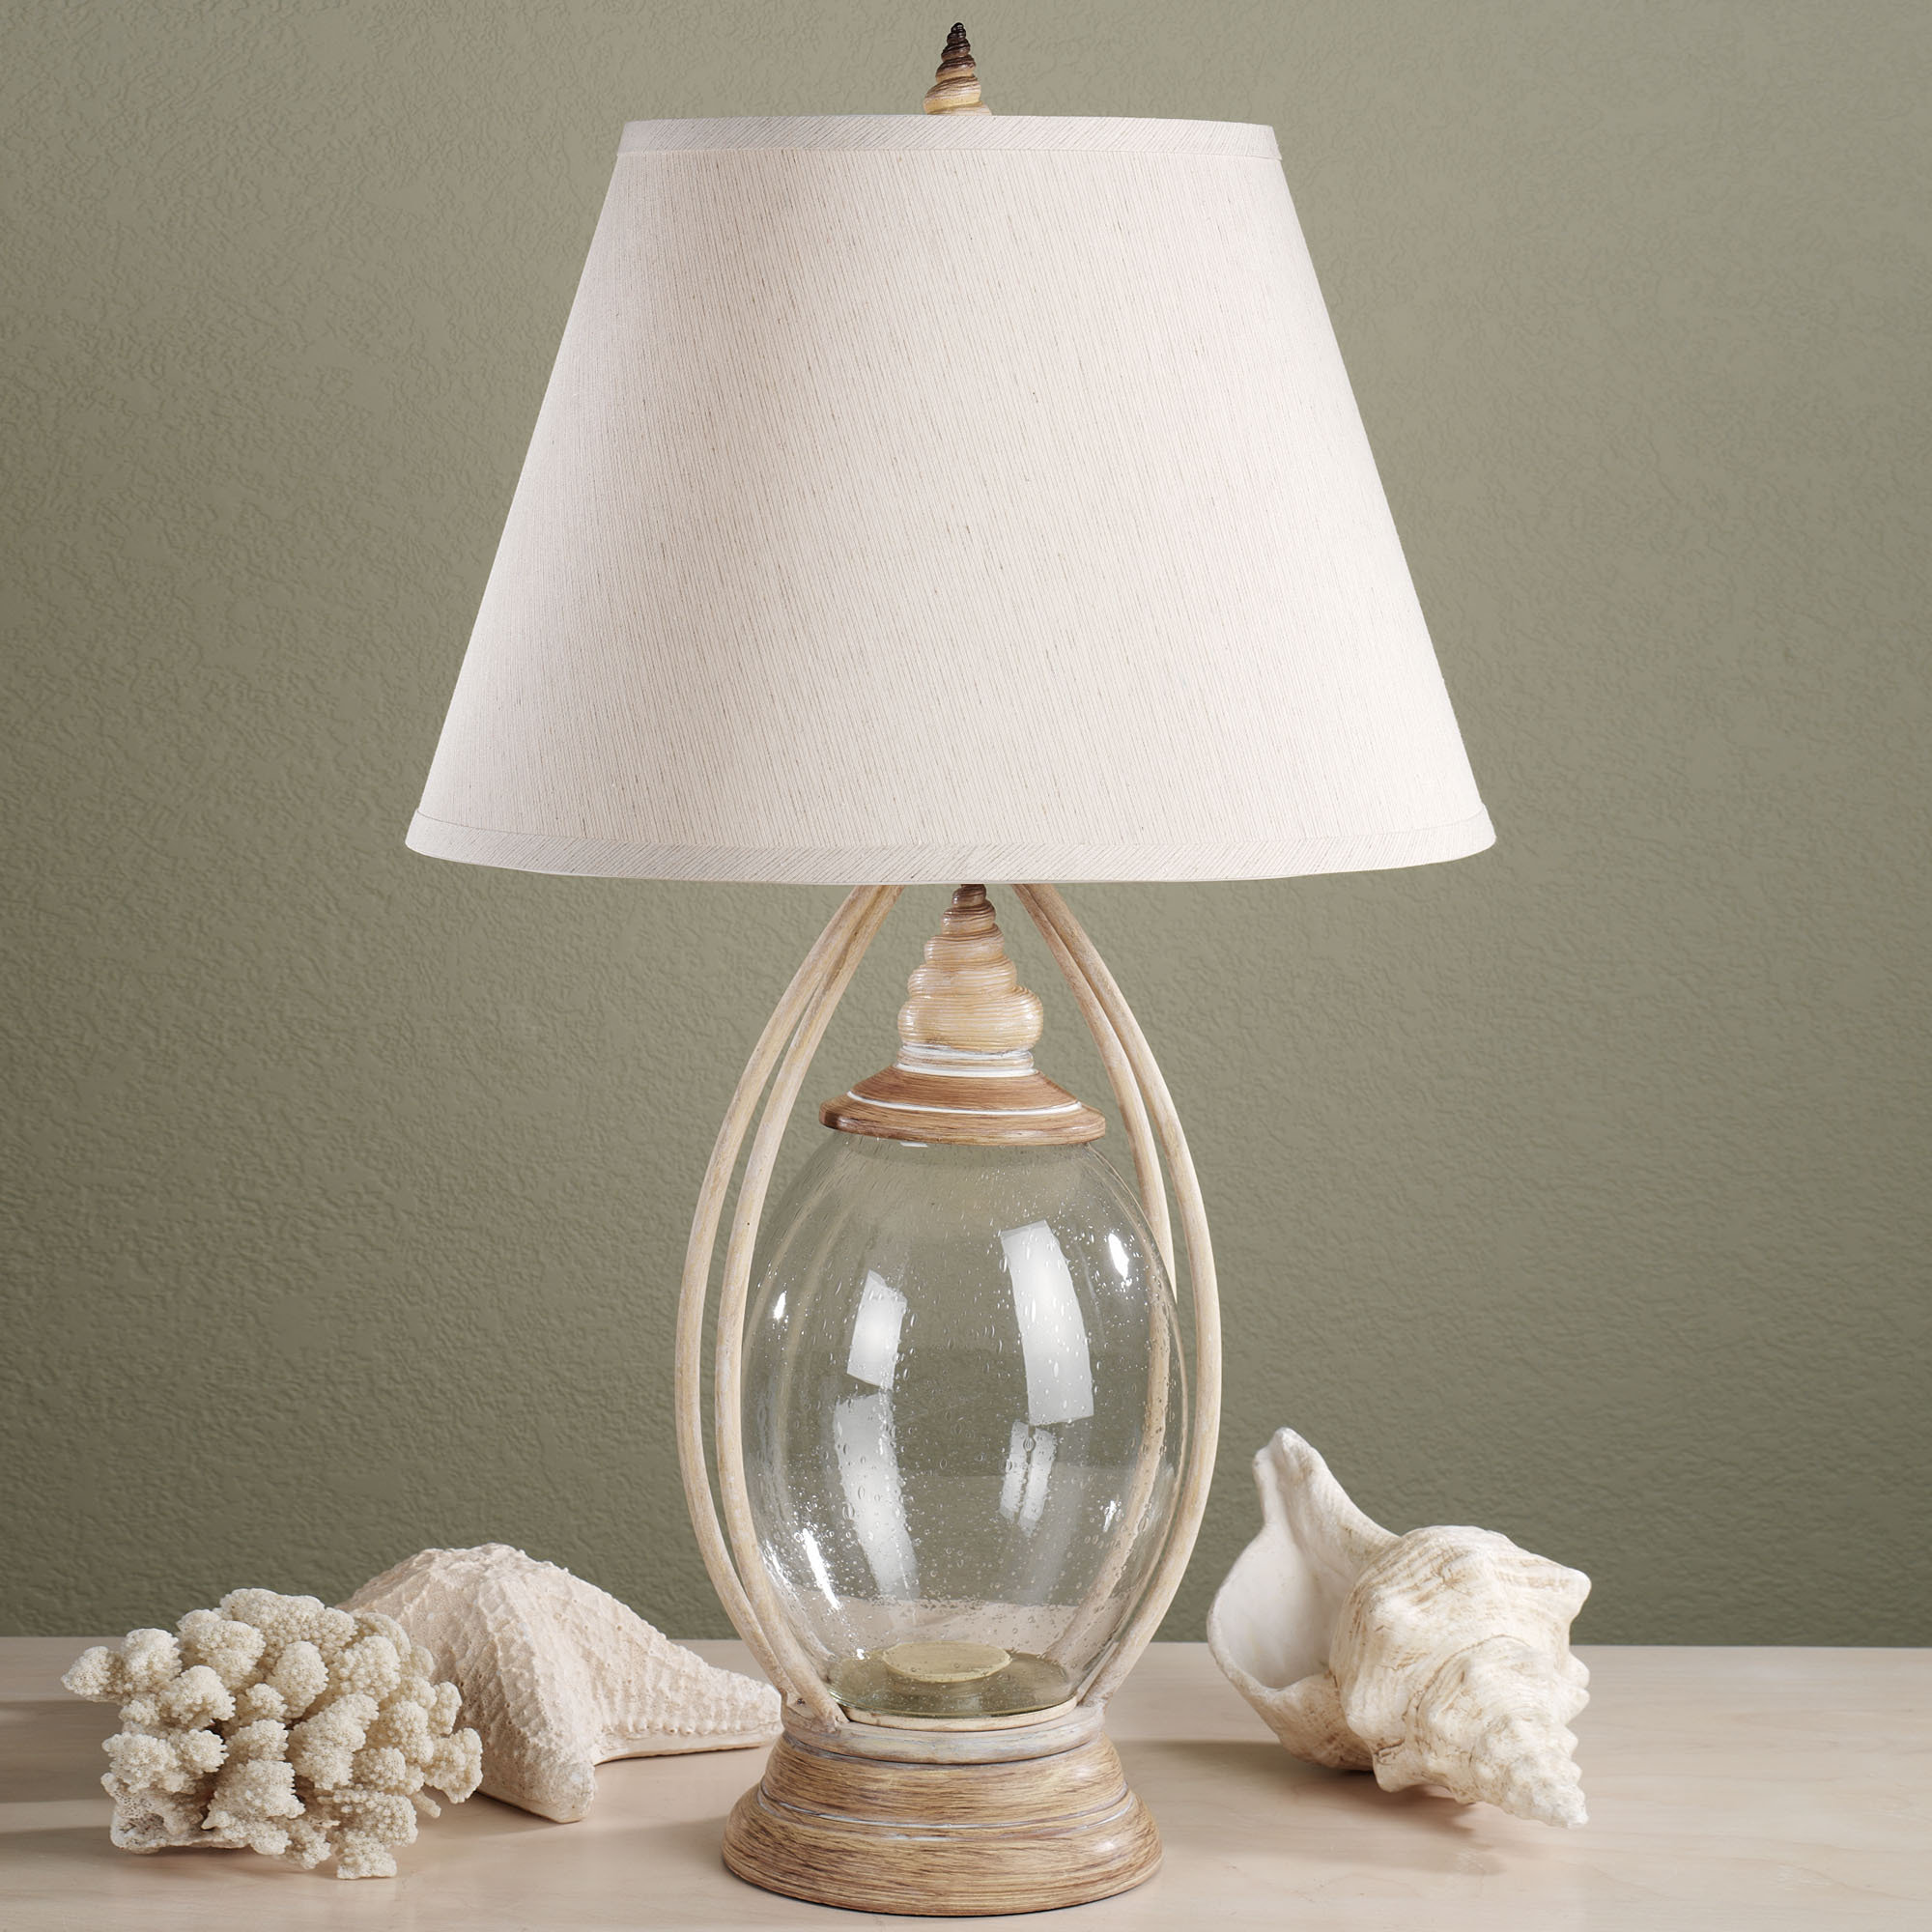 Cute crystal table lamps for bedroom image of: table lamp for bedroom pyprmsn